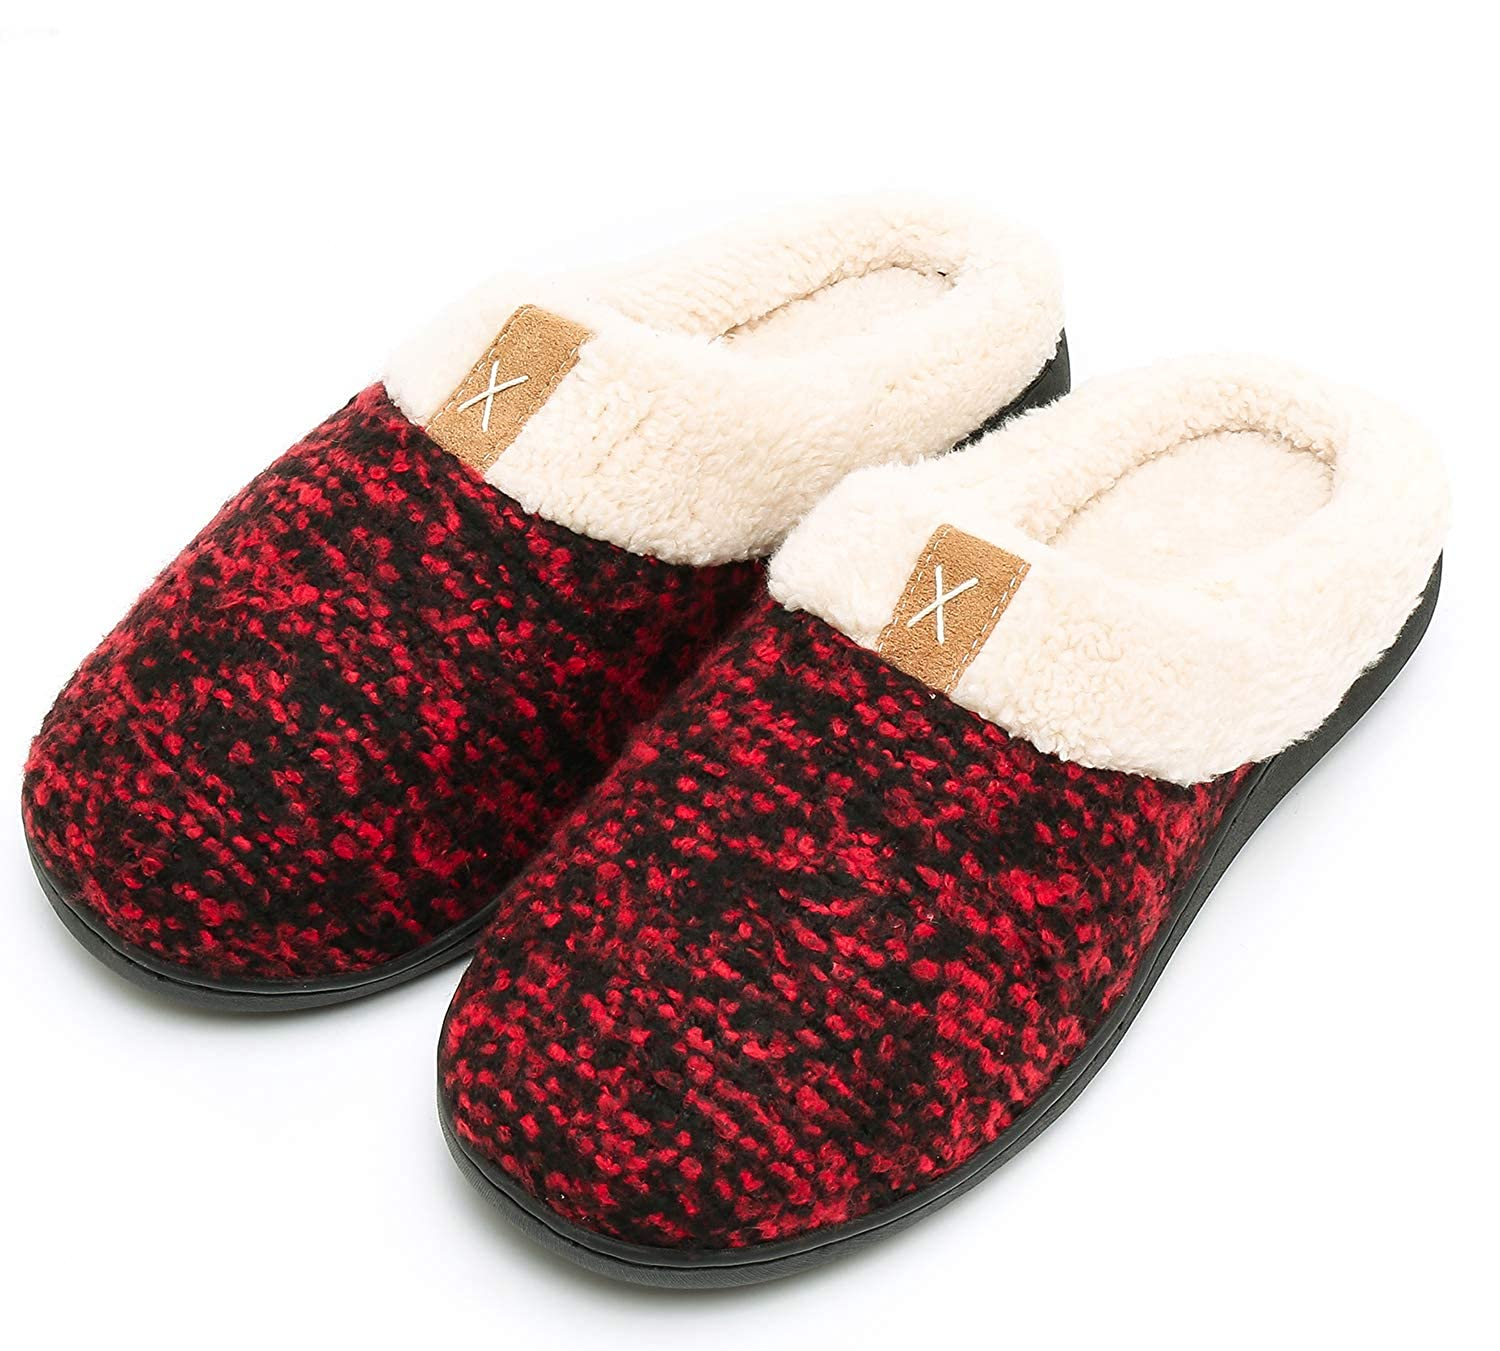 Caissip Women's Cozy Memory Foam Slippers Fuzzy Wool-Like Plush Fleece Lined House Shoes w/Indoor Outdoor